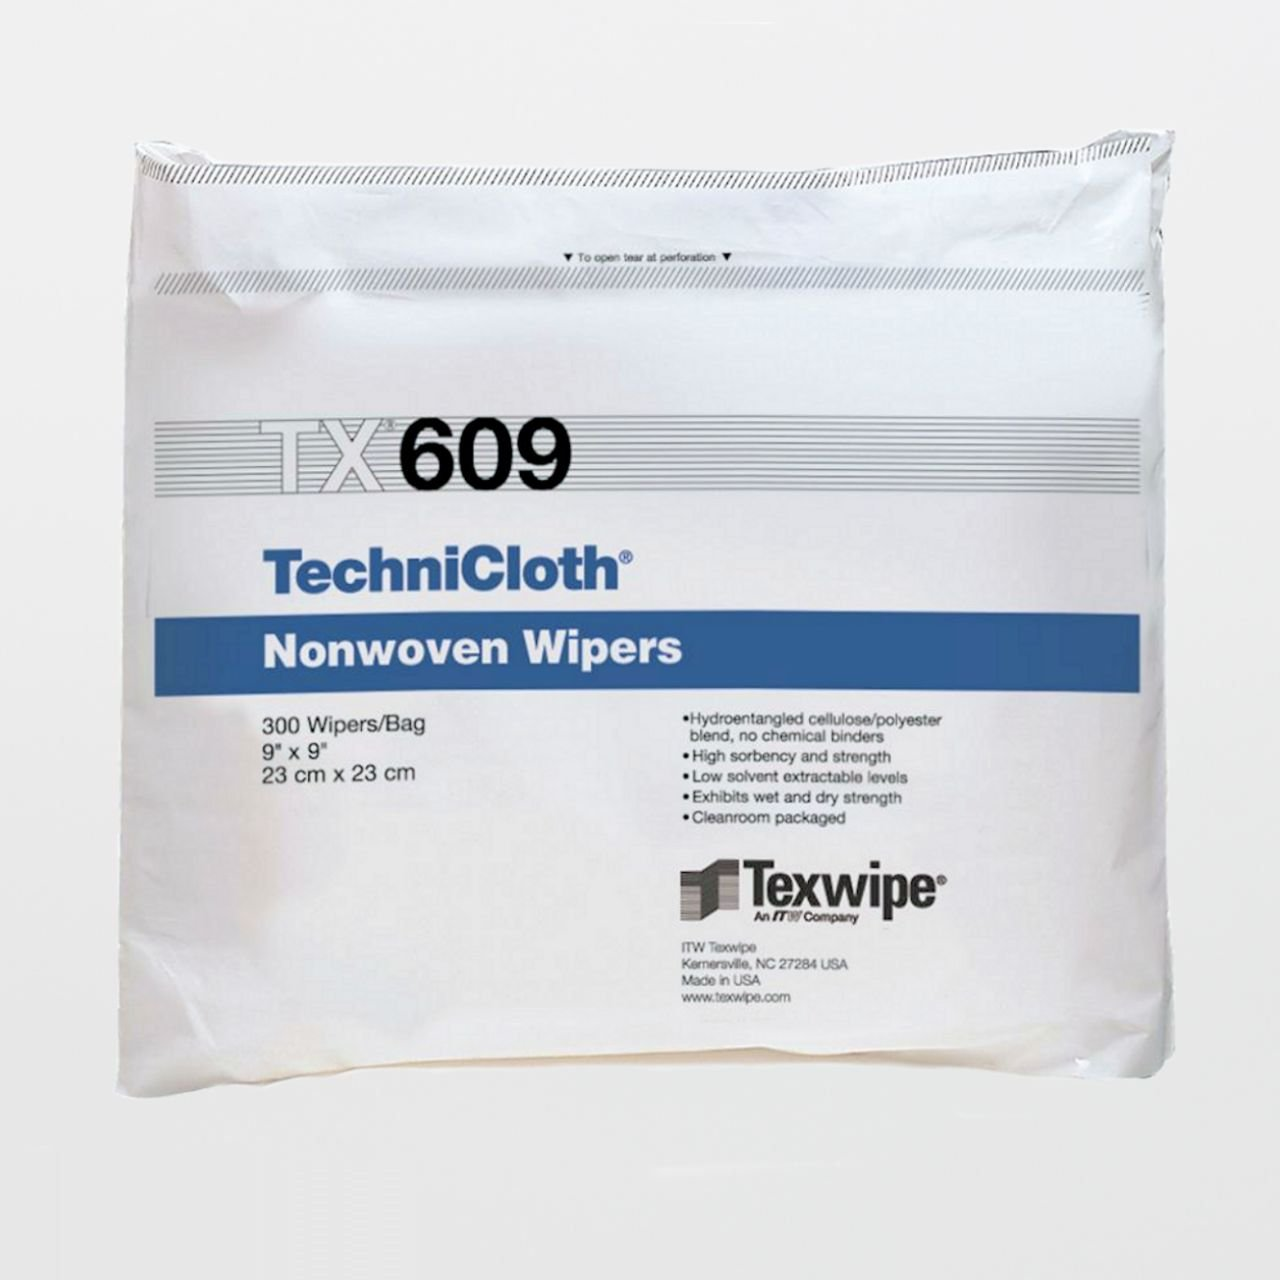 Case of TX609 TechniCloth 9'' x 9'' Cellulose and Polyester Cleanroom Wiper - 10 Bags of 300 Wipers (3000 Total) by Itw Texwipe